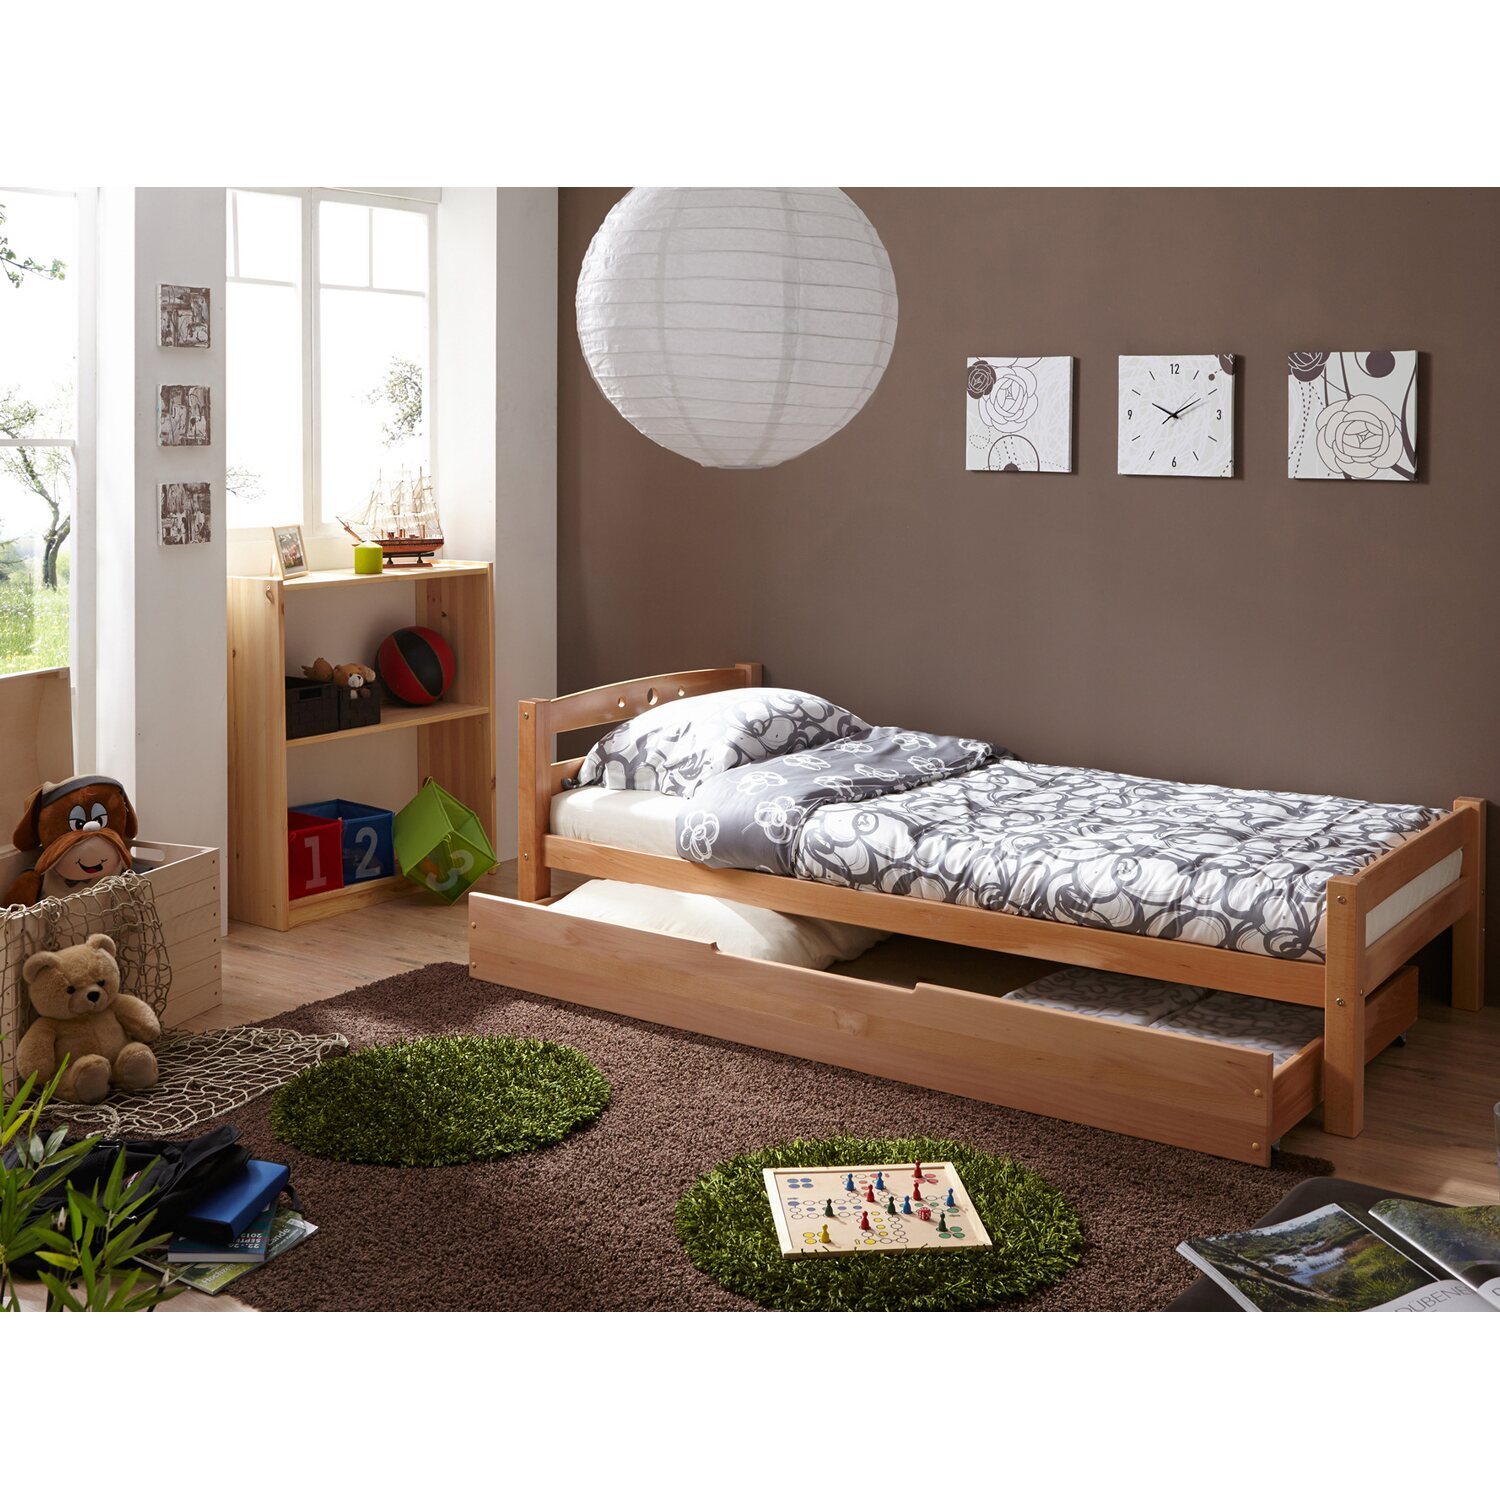 einzelbett mit schubkasten lupo buche natur kaufen bei obi. Black Bedroom Furniture Sets. Home Design Ideas